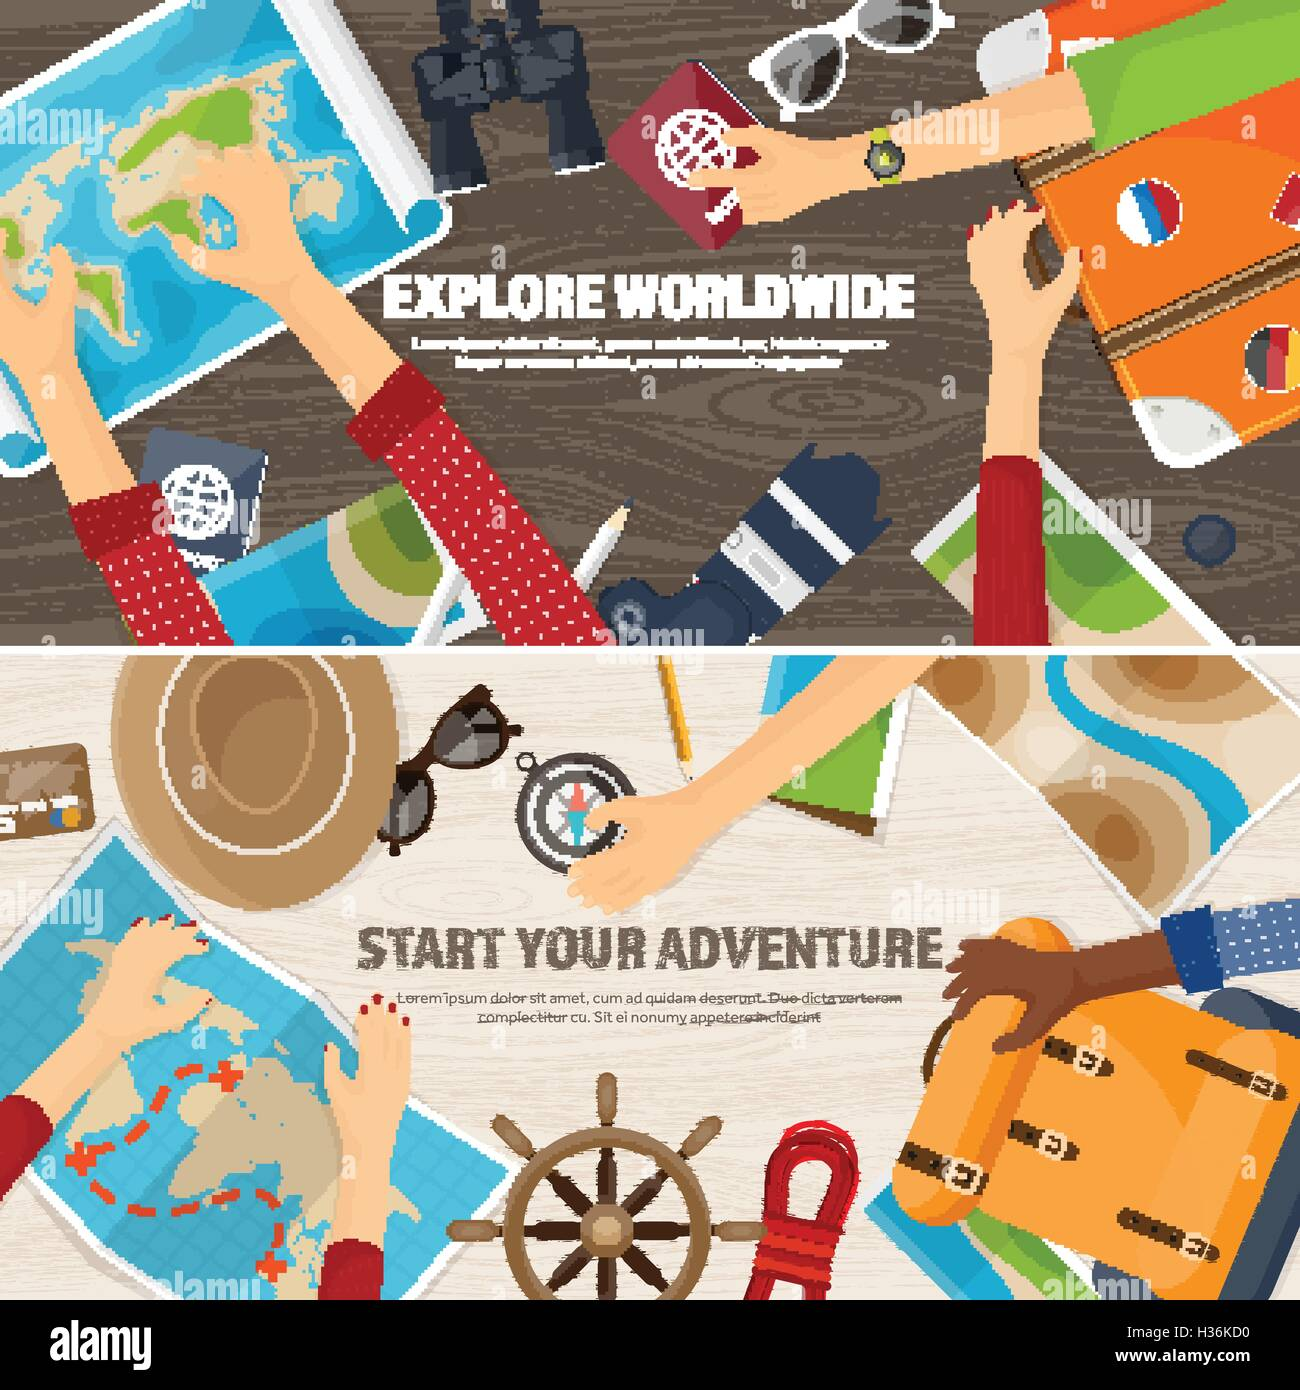 Travel and tourism flat style world earth map globe trip tour flat style world earth map globe trip tour journey summer holidays travellingexploring worldwide adventureexpedition table workplace traveler gumiabroncs Gallery